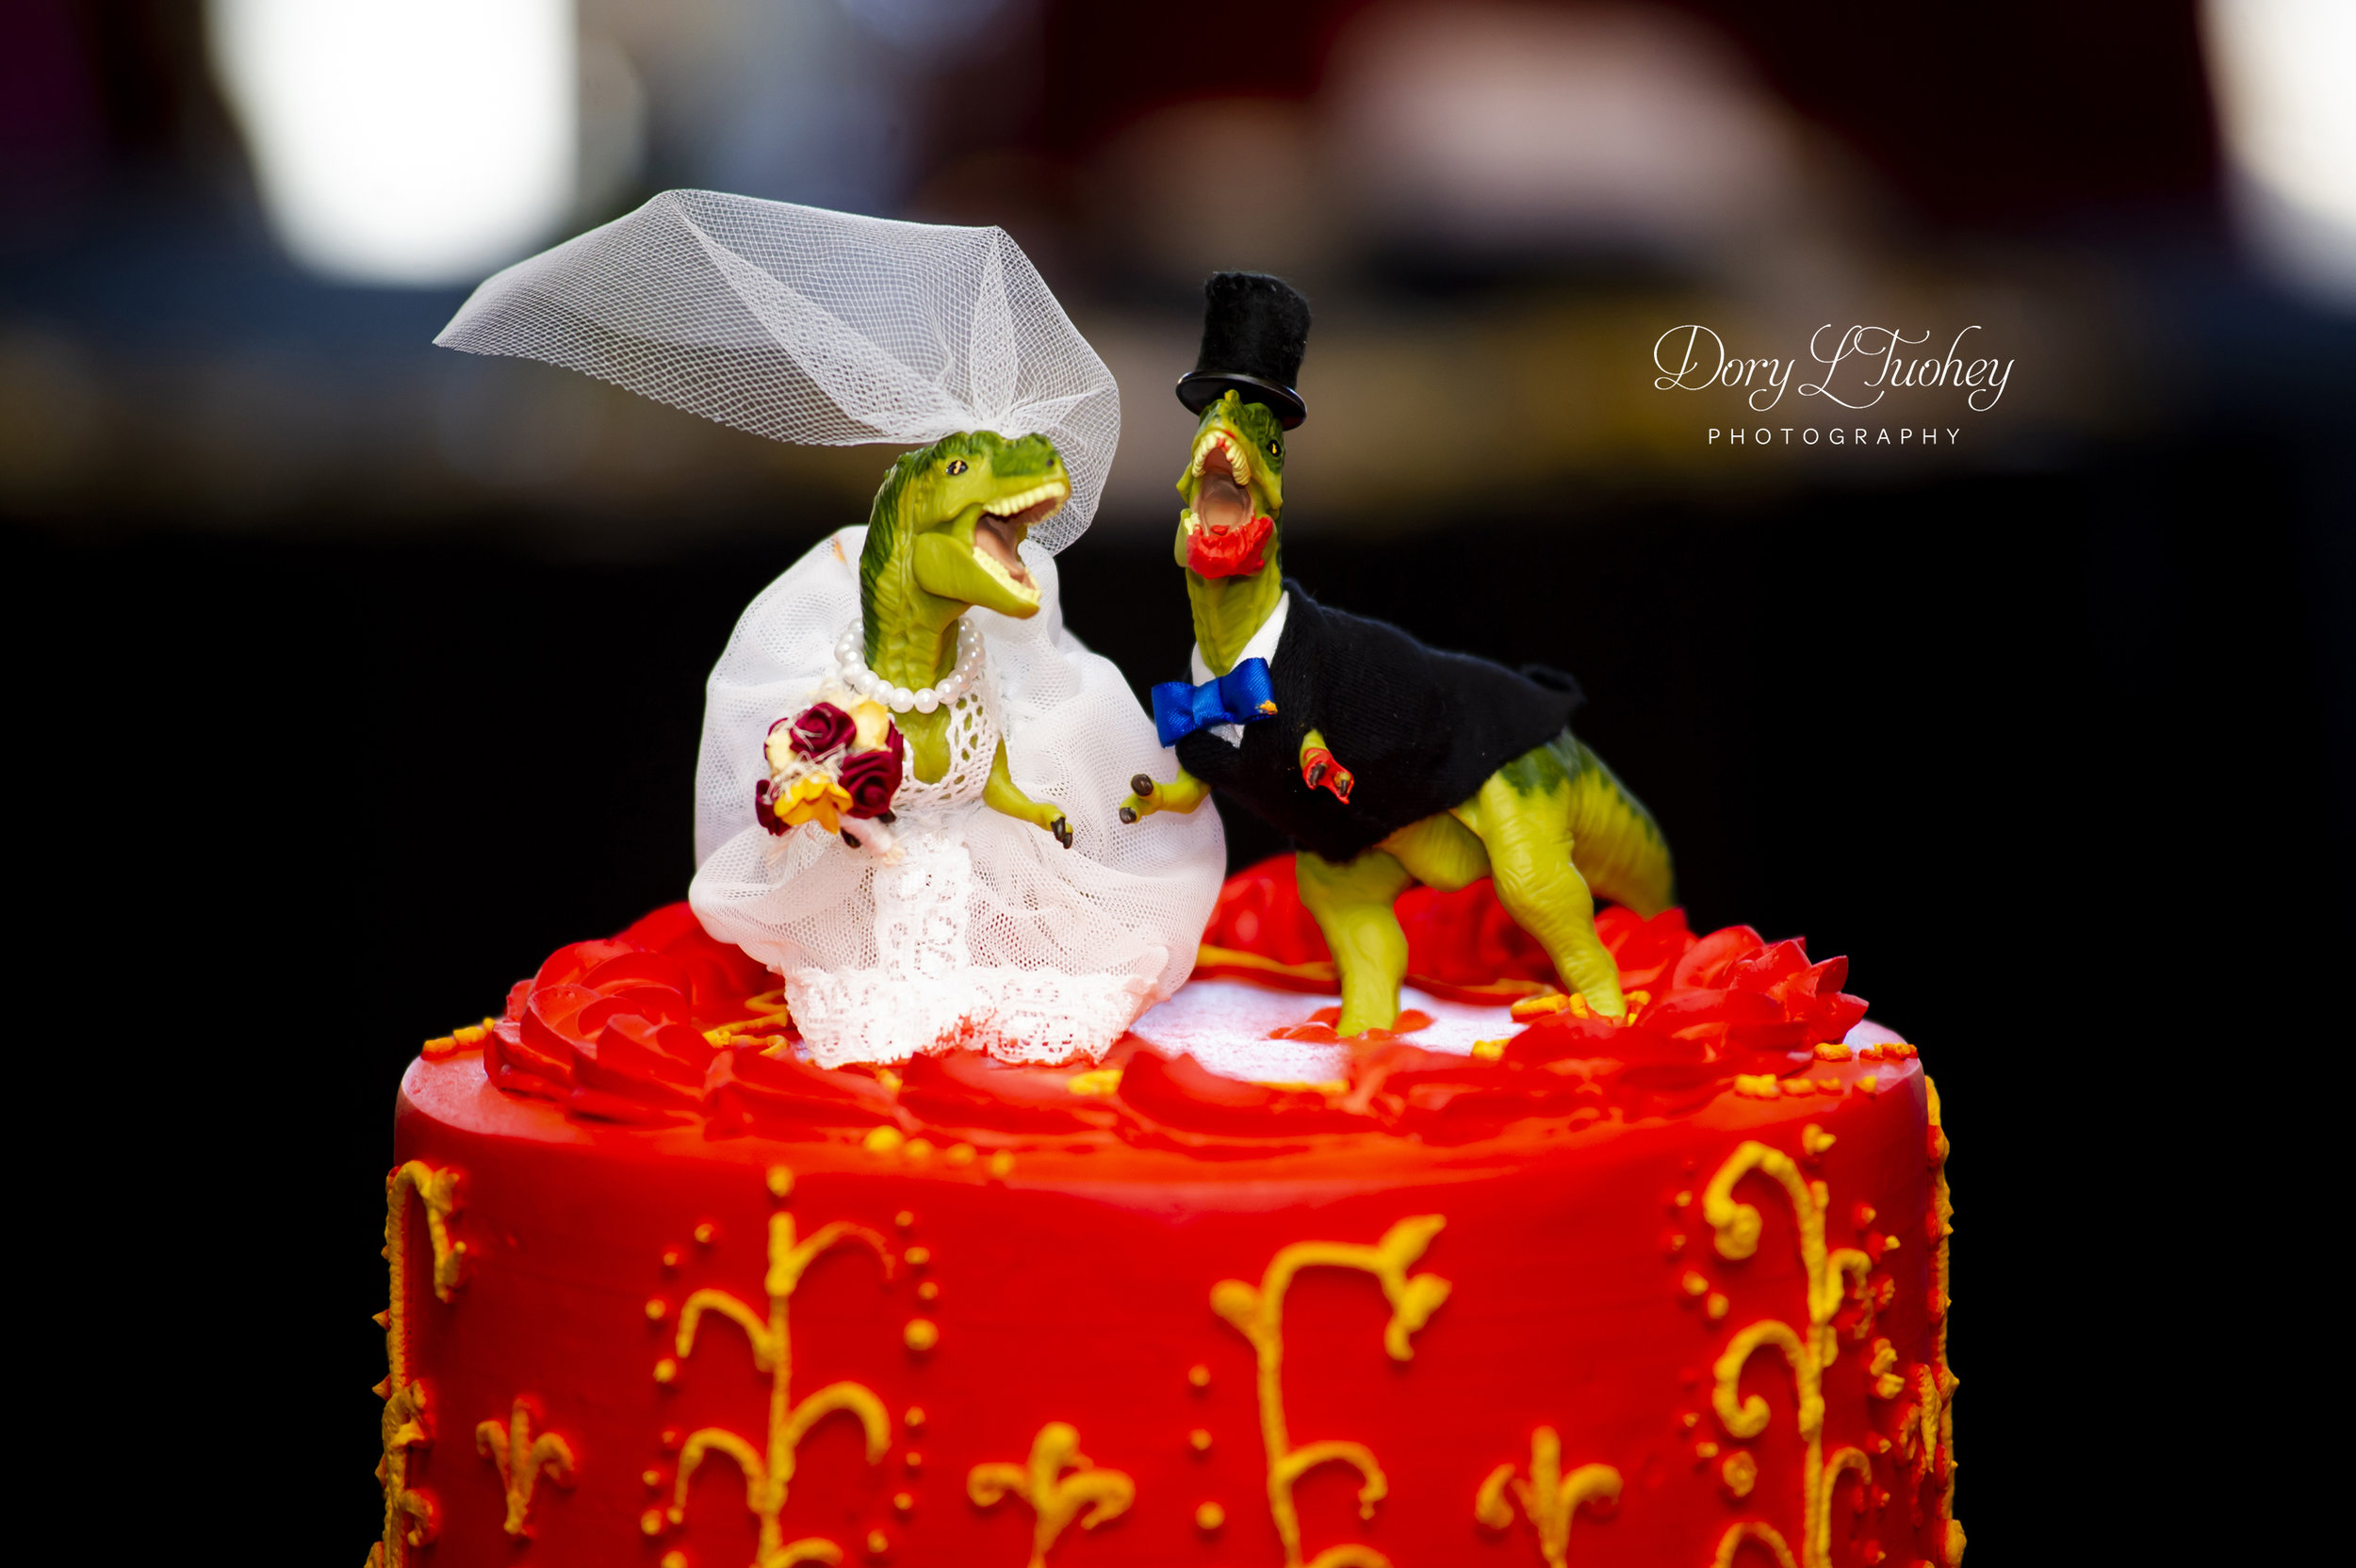 Check out this cake topper! Caught red handed! Apparently the groom couldn't wait to dig in!